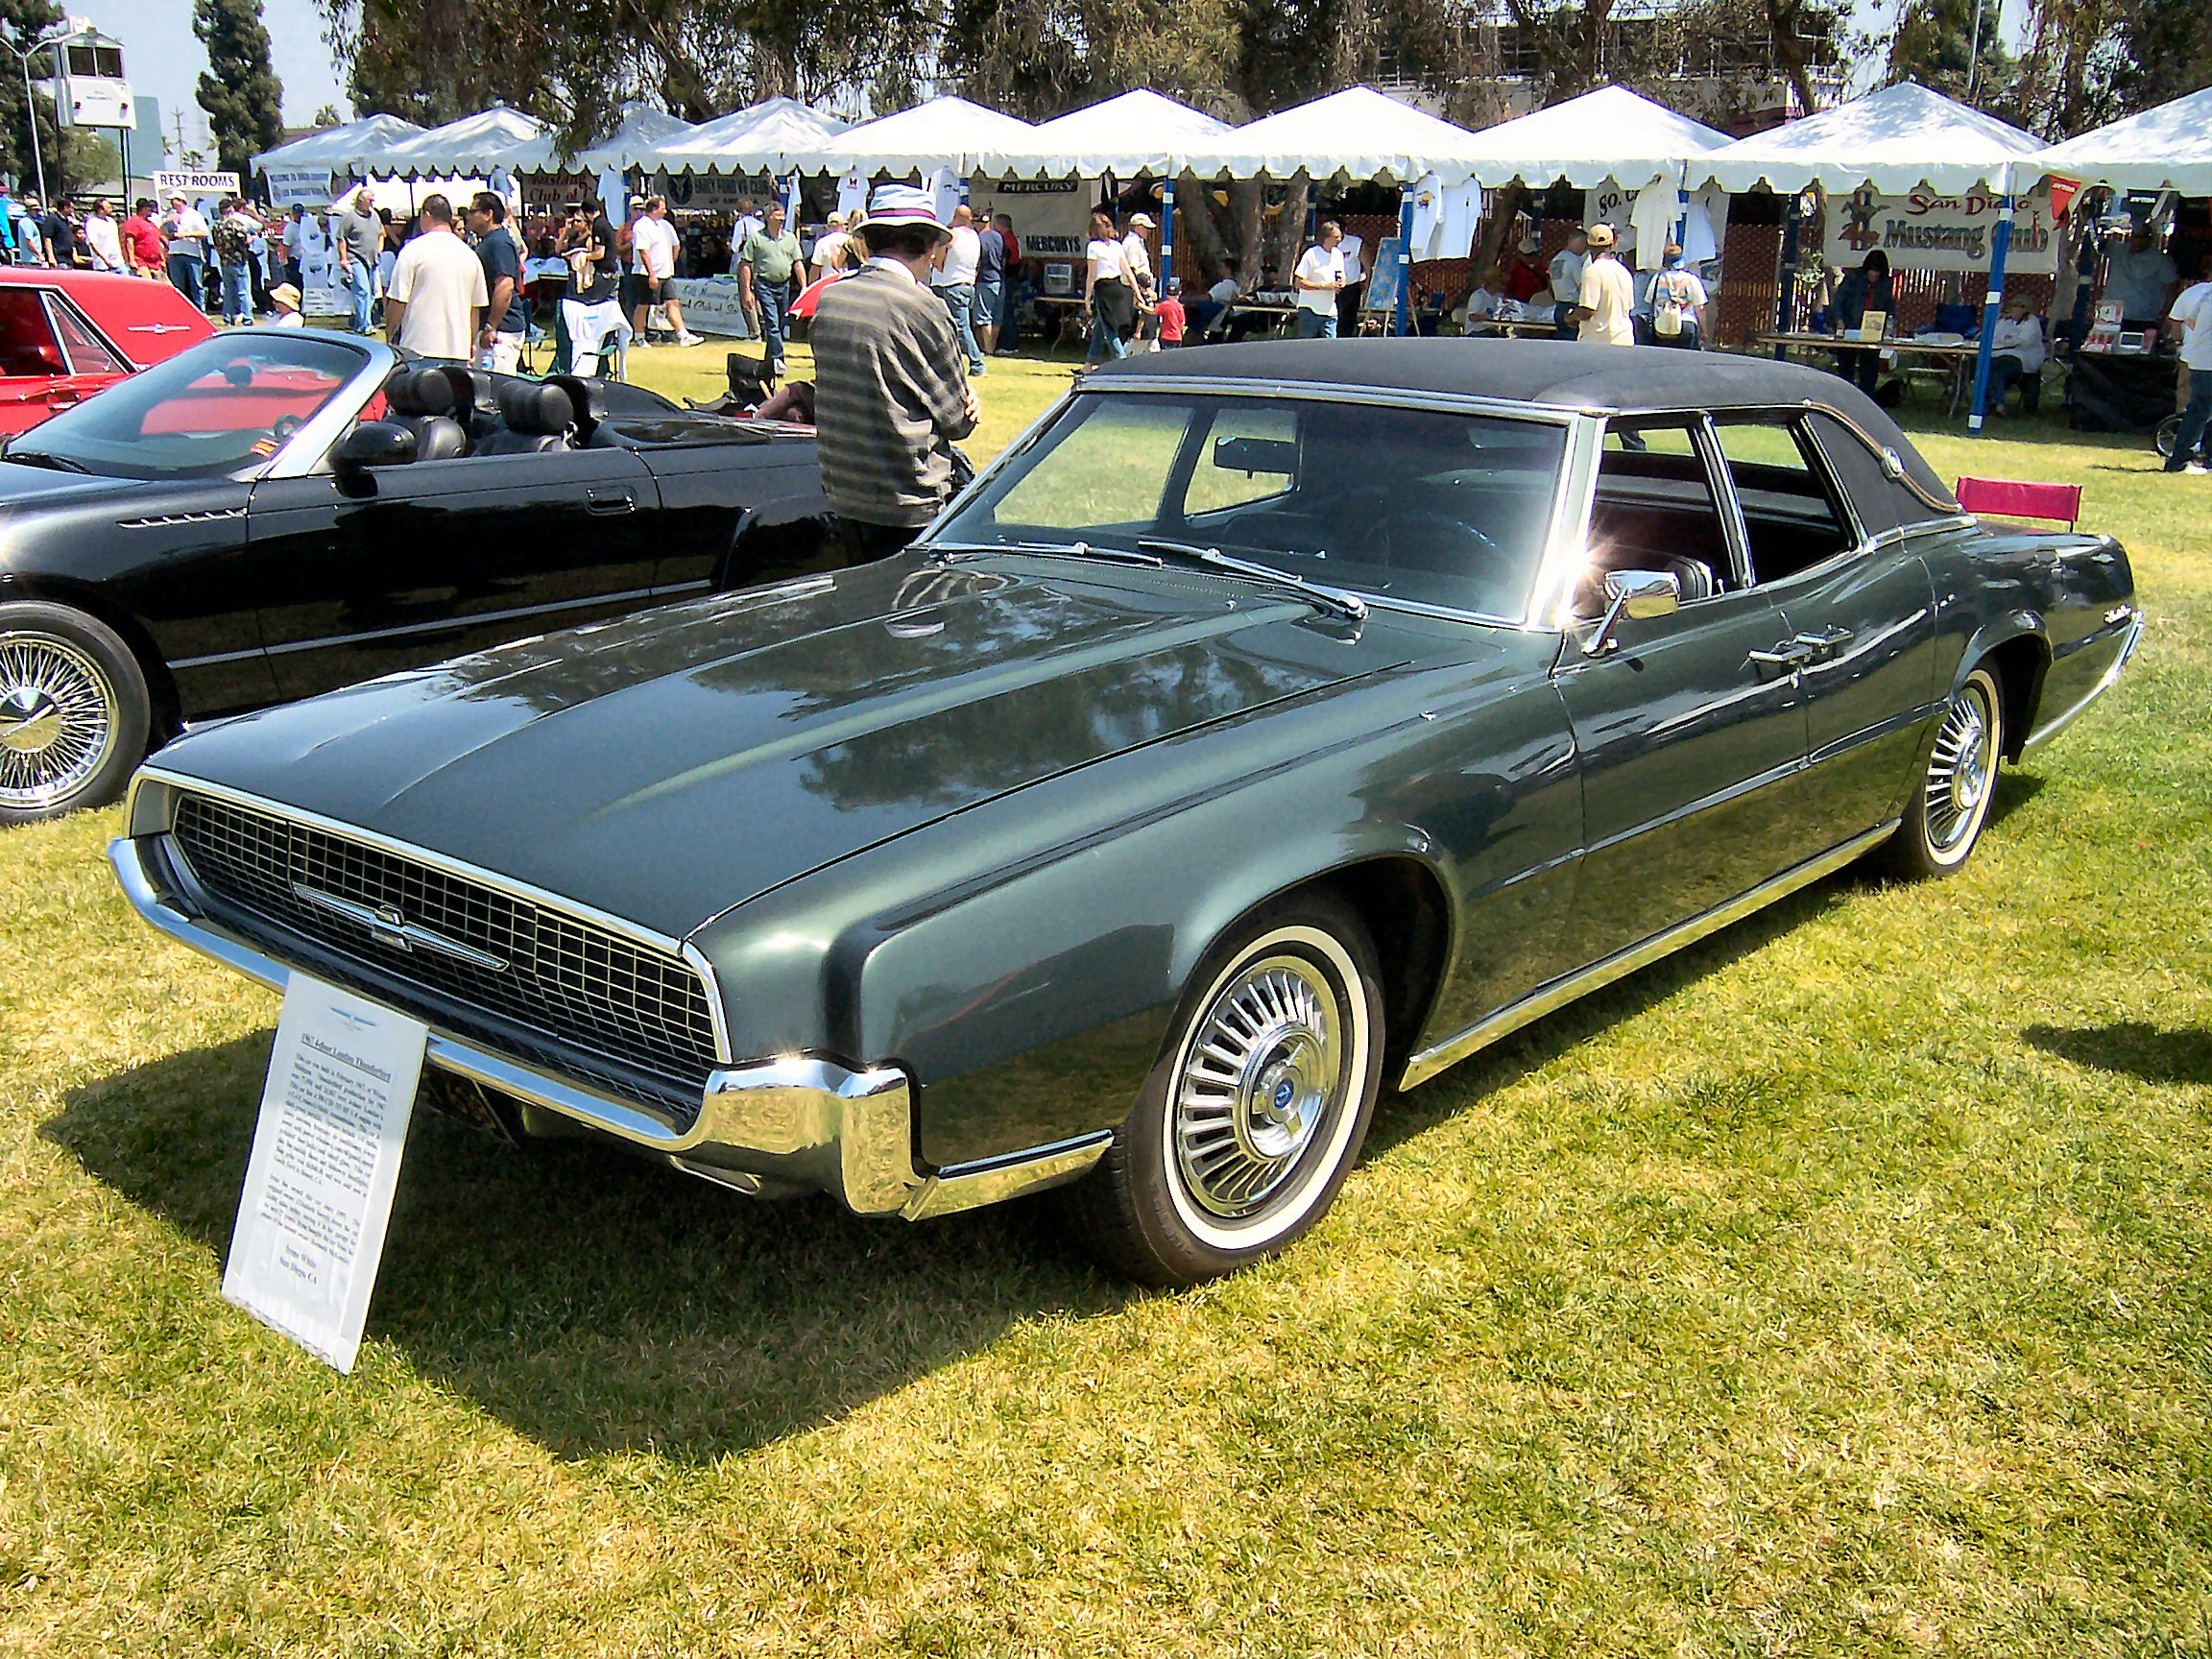 Ford thunderbird fifth generation